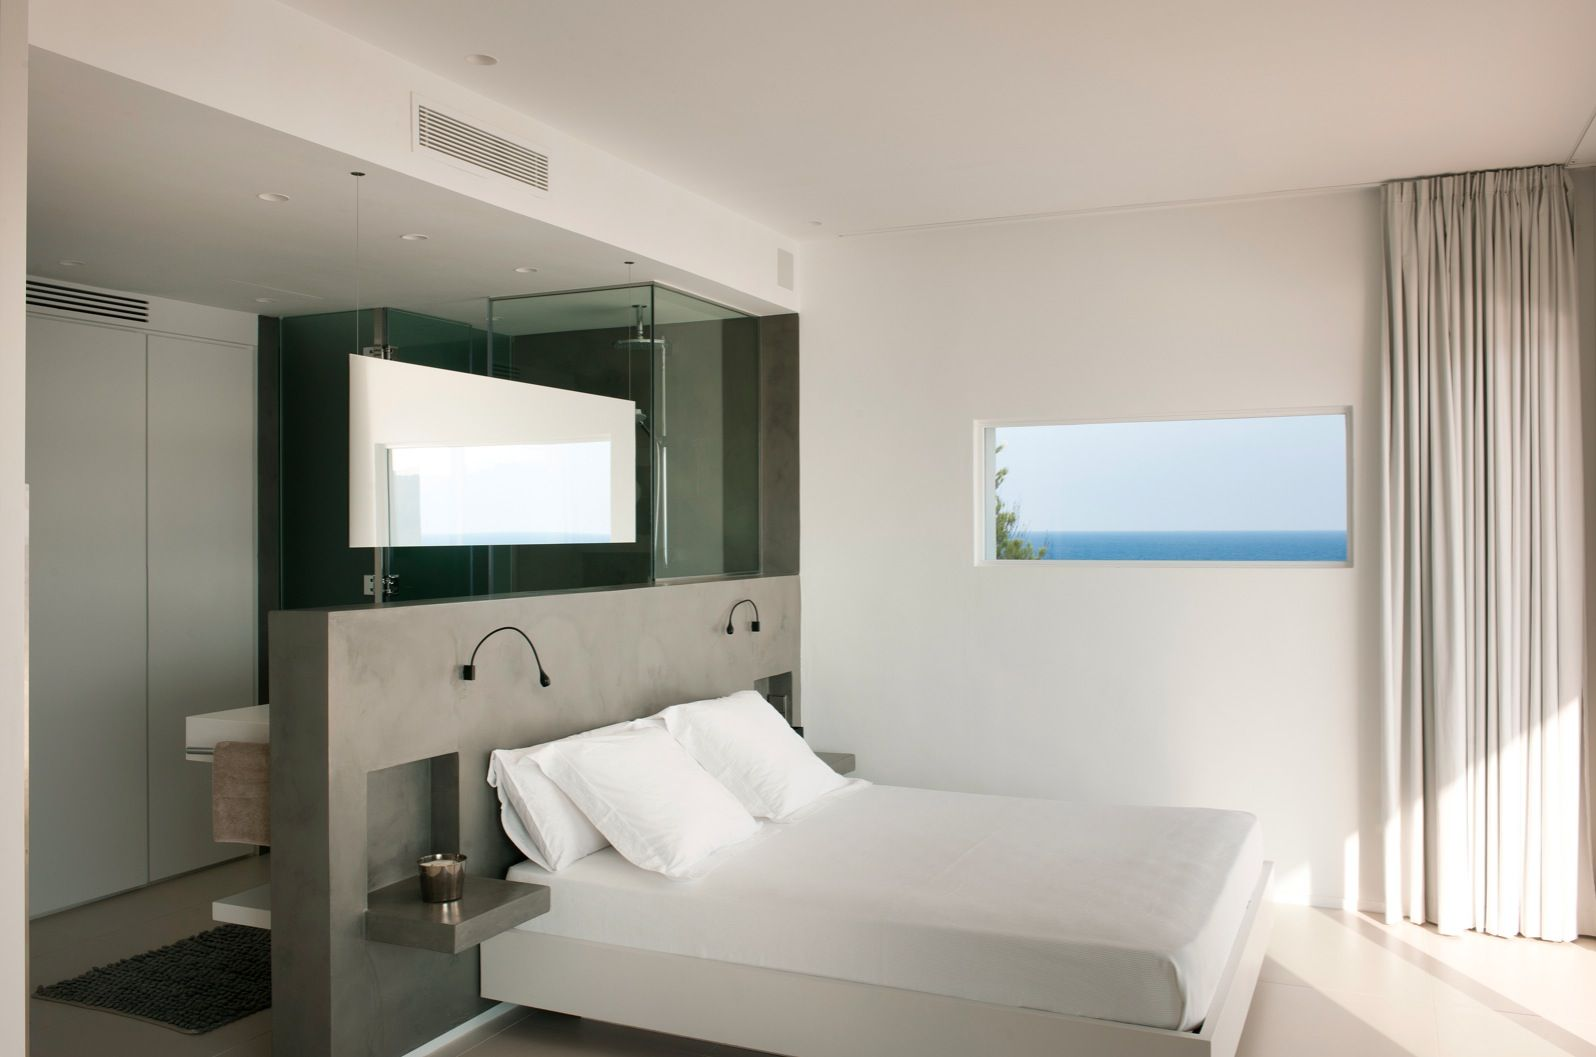 Open Plan Bathroom And Bedroom Designs